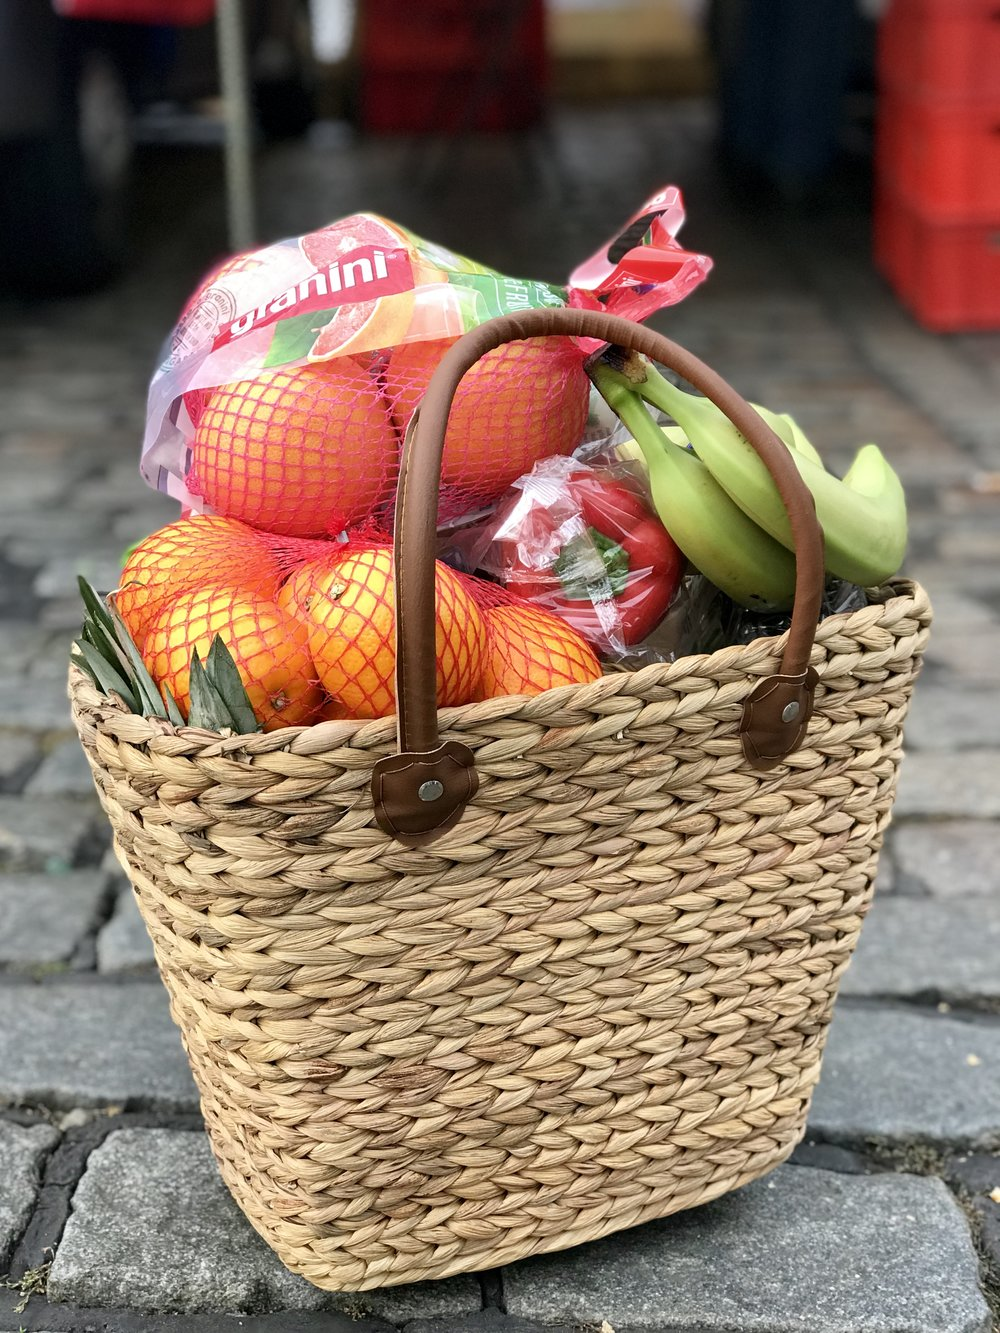 A HUGE basket of fruit & veggies just for €10 at the famous 'Fischmarkt' in Hamburg.